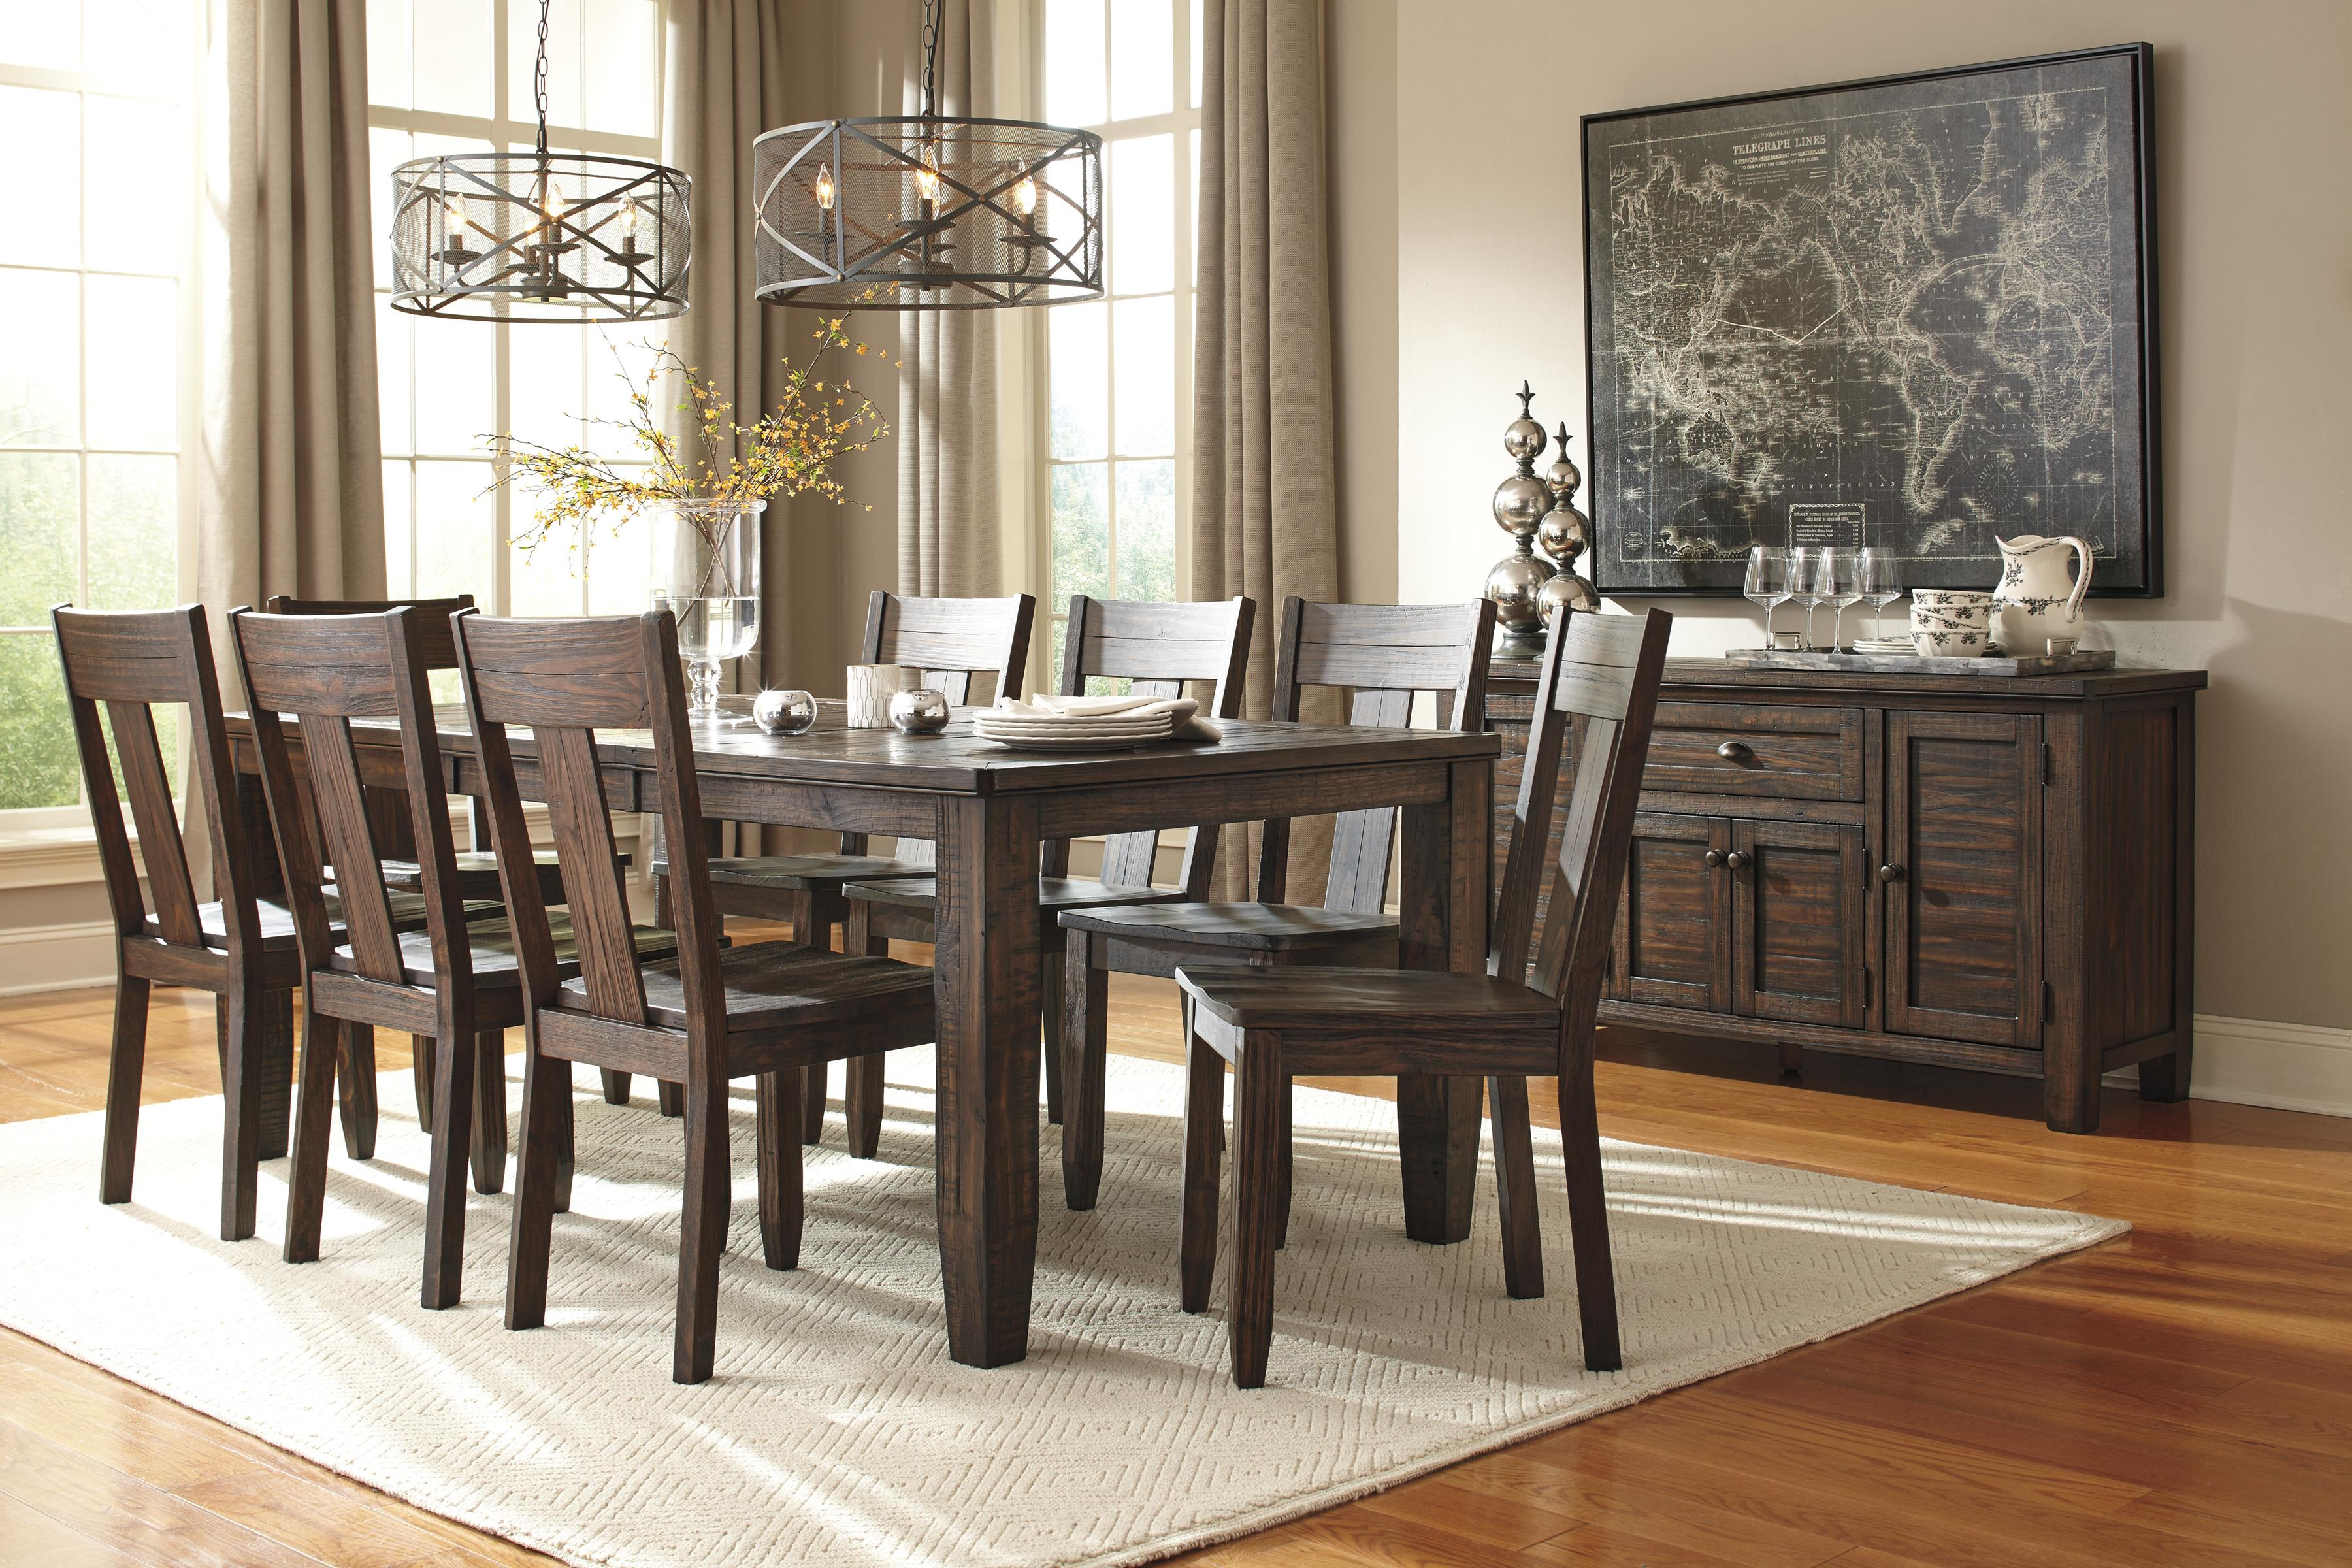 9-Piece Rectangular Dining Table Set with Wood Seat Chairs by ...